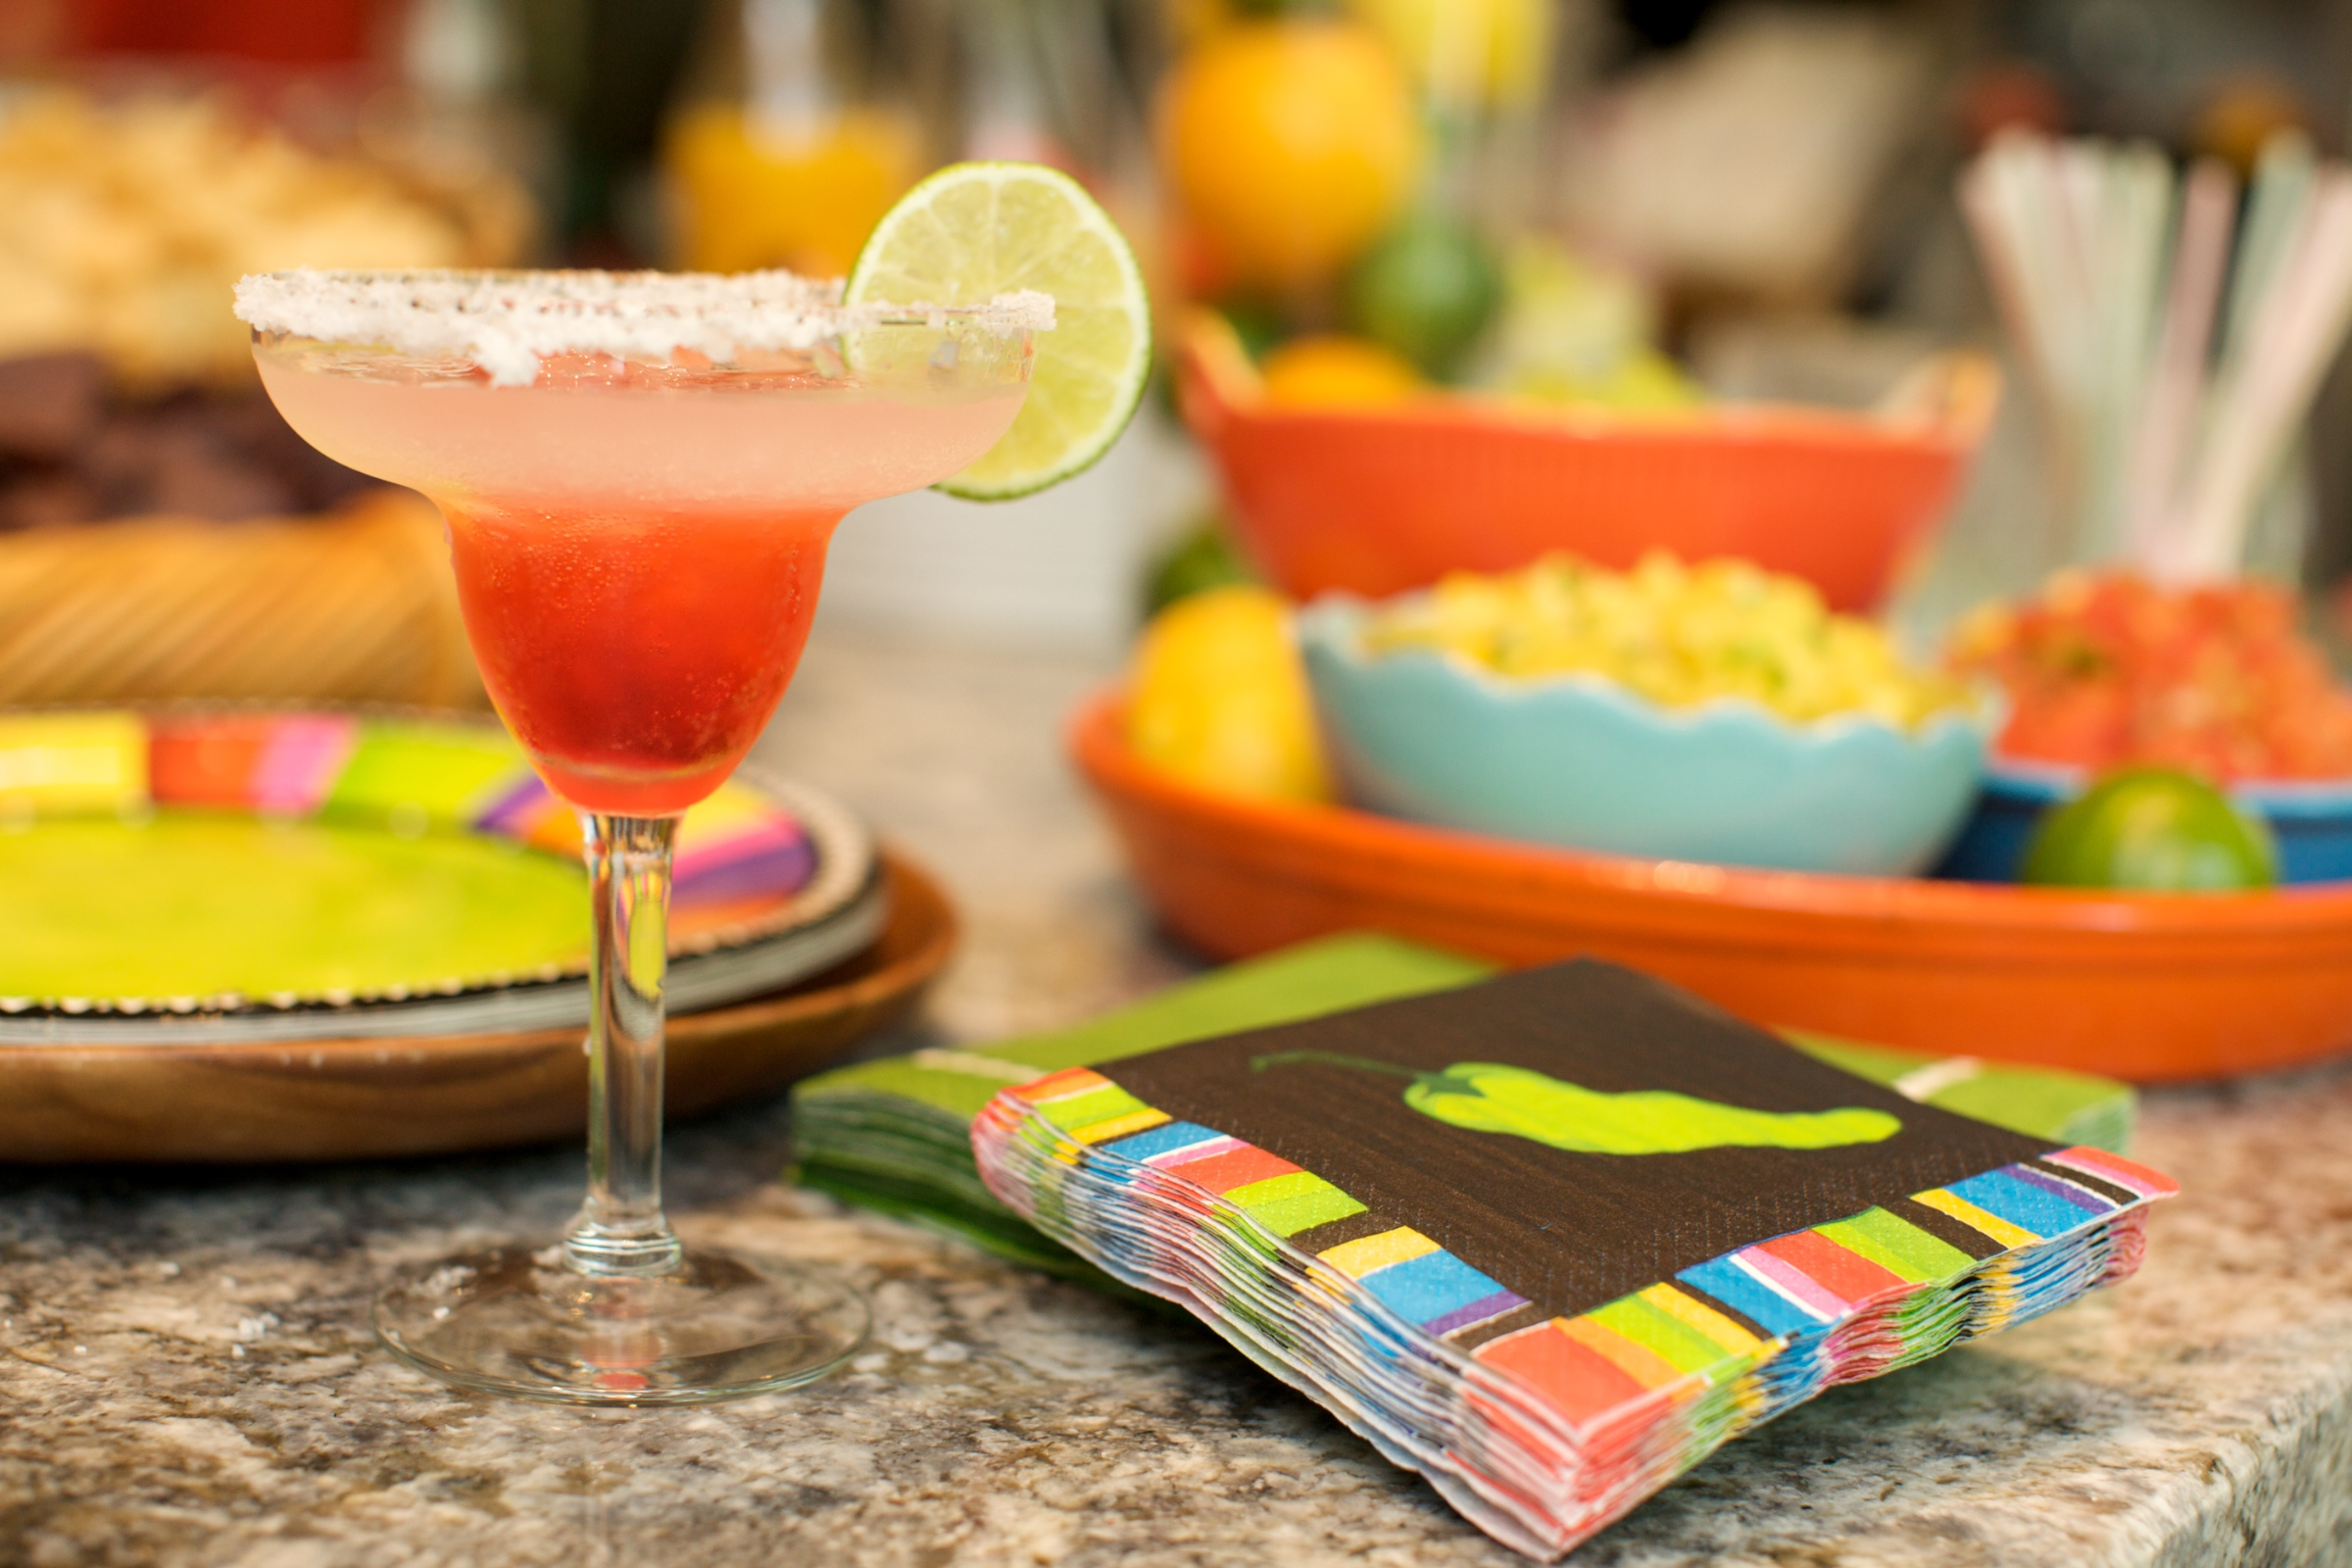 You just cannot go wrong with a Mexican theme. Everyone loves a margarita and Mexican food is very easy to make or to get.